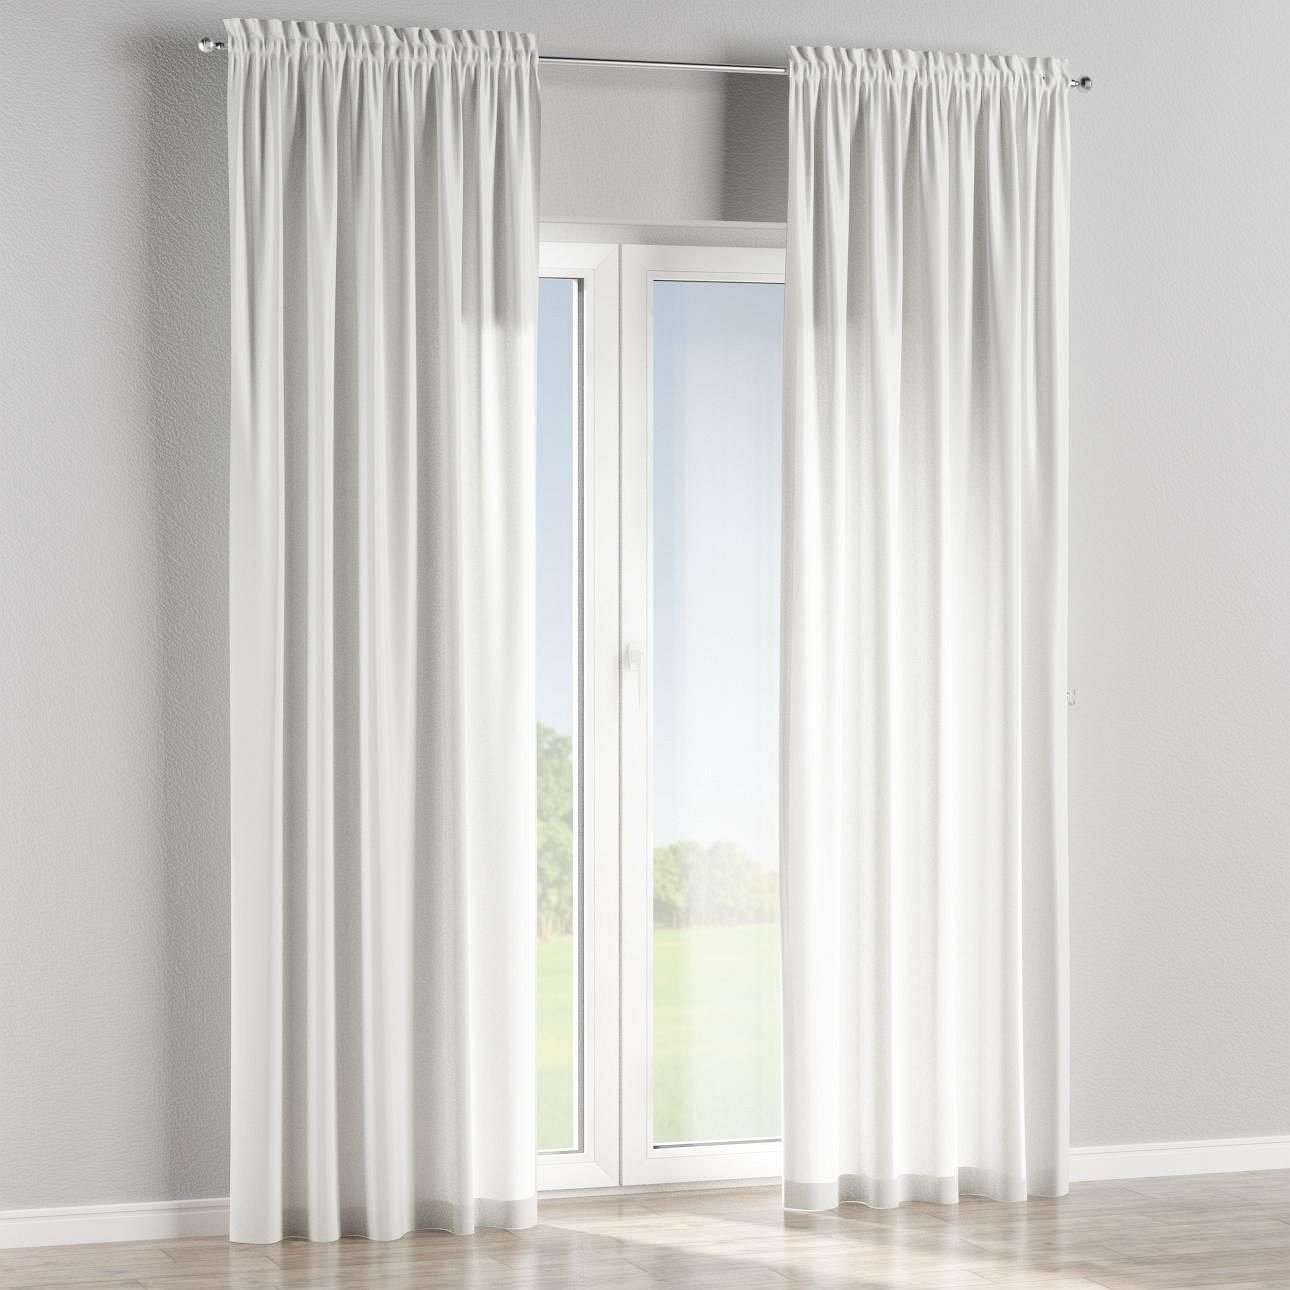 Slot and frill lined curtains in collection Mirella, fabric: 143-06